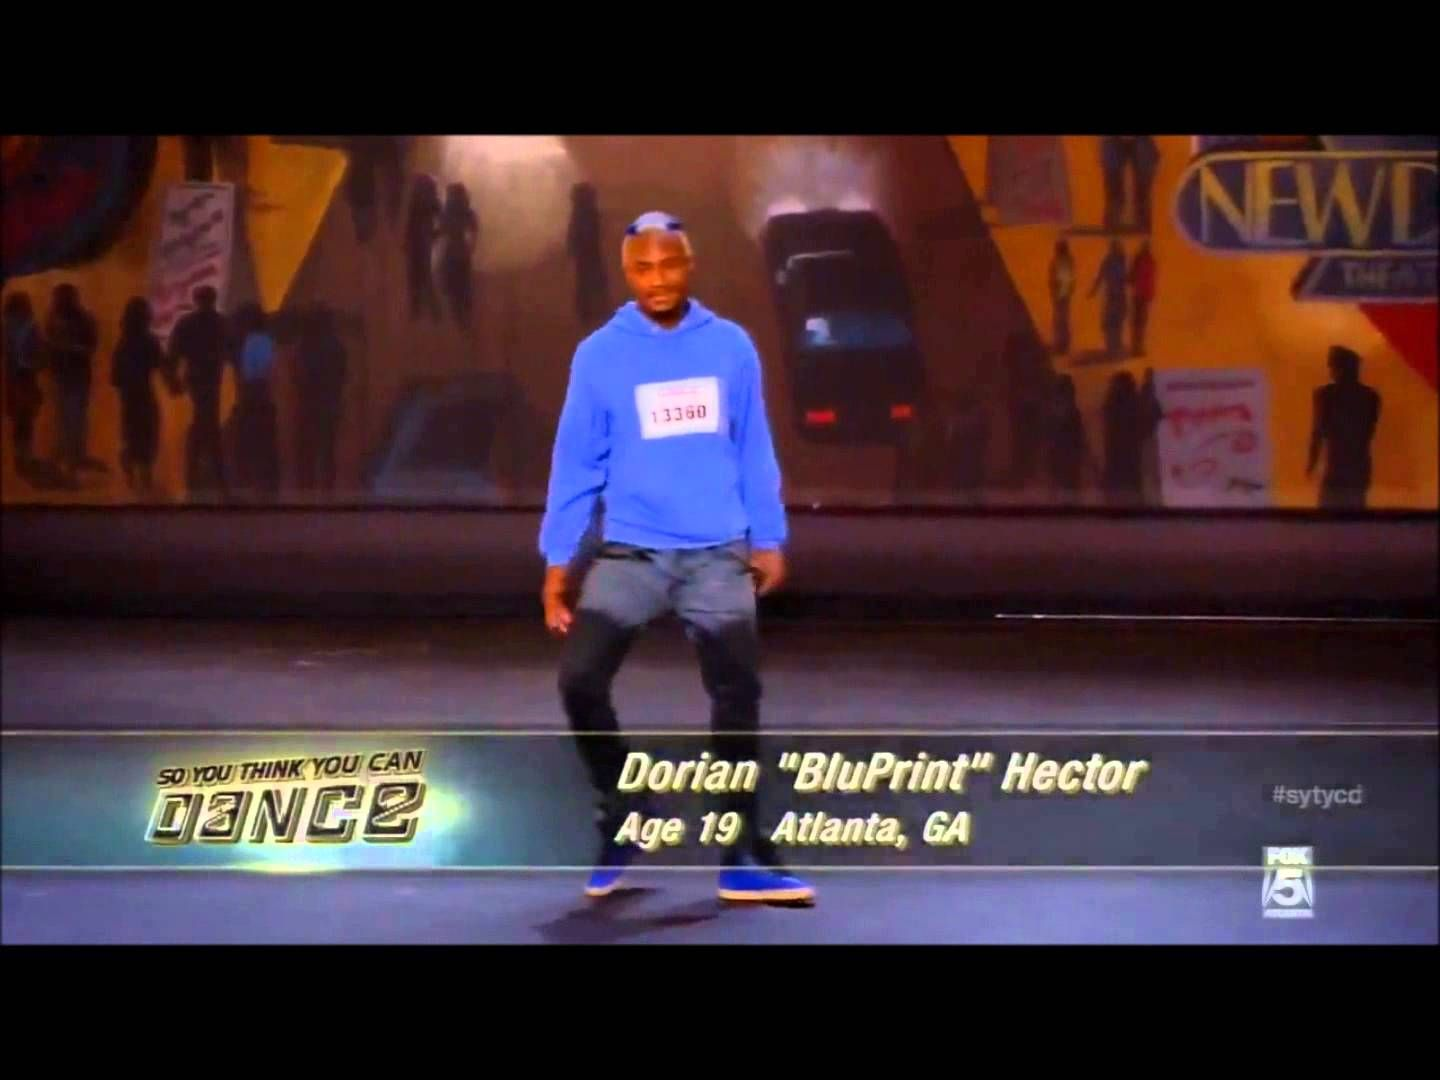 So you think you can dance dorian bluprint hector sytycd 9 dancing malvernweather Choice Image